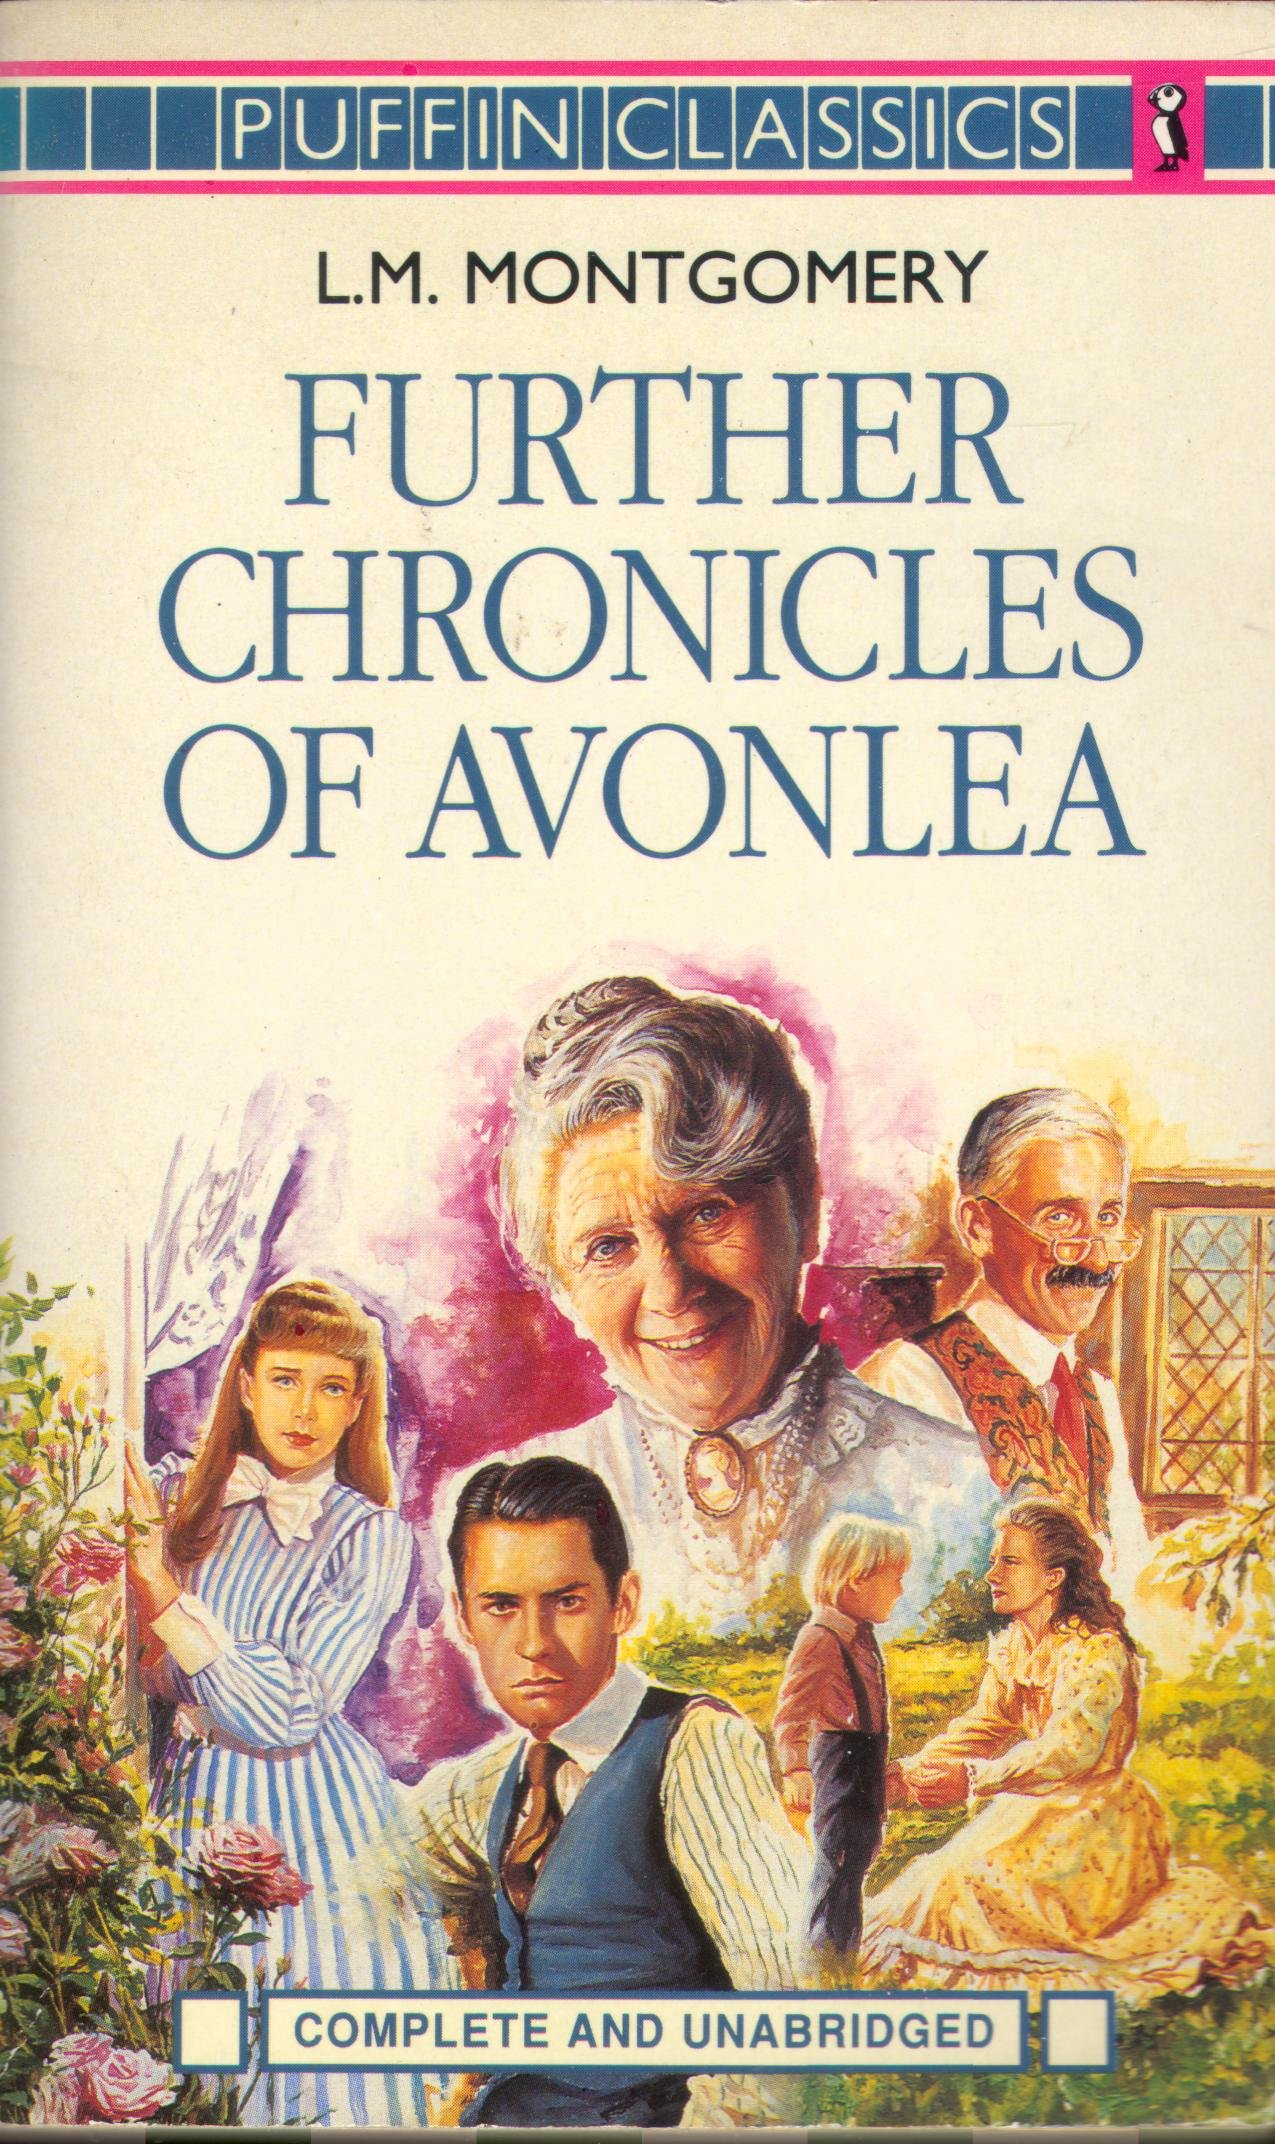 Further Chronicles Of Avonlea Puffin Classics LM Montgomery 9780140351521 Amazon Books